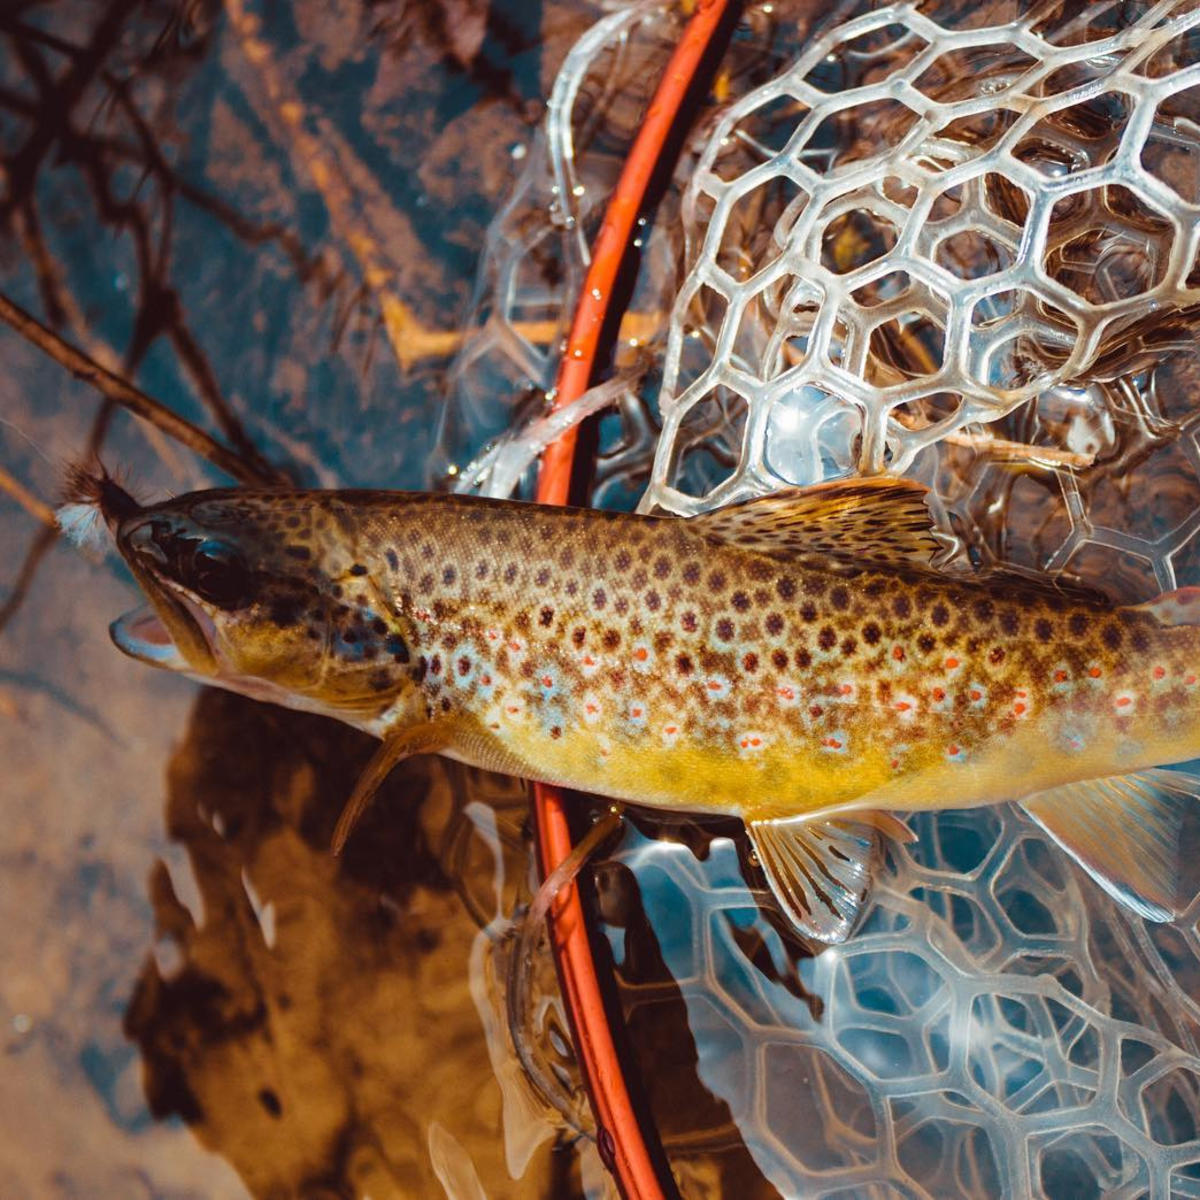 Reel in a great catch, fishing in the Stevens Point Area.